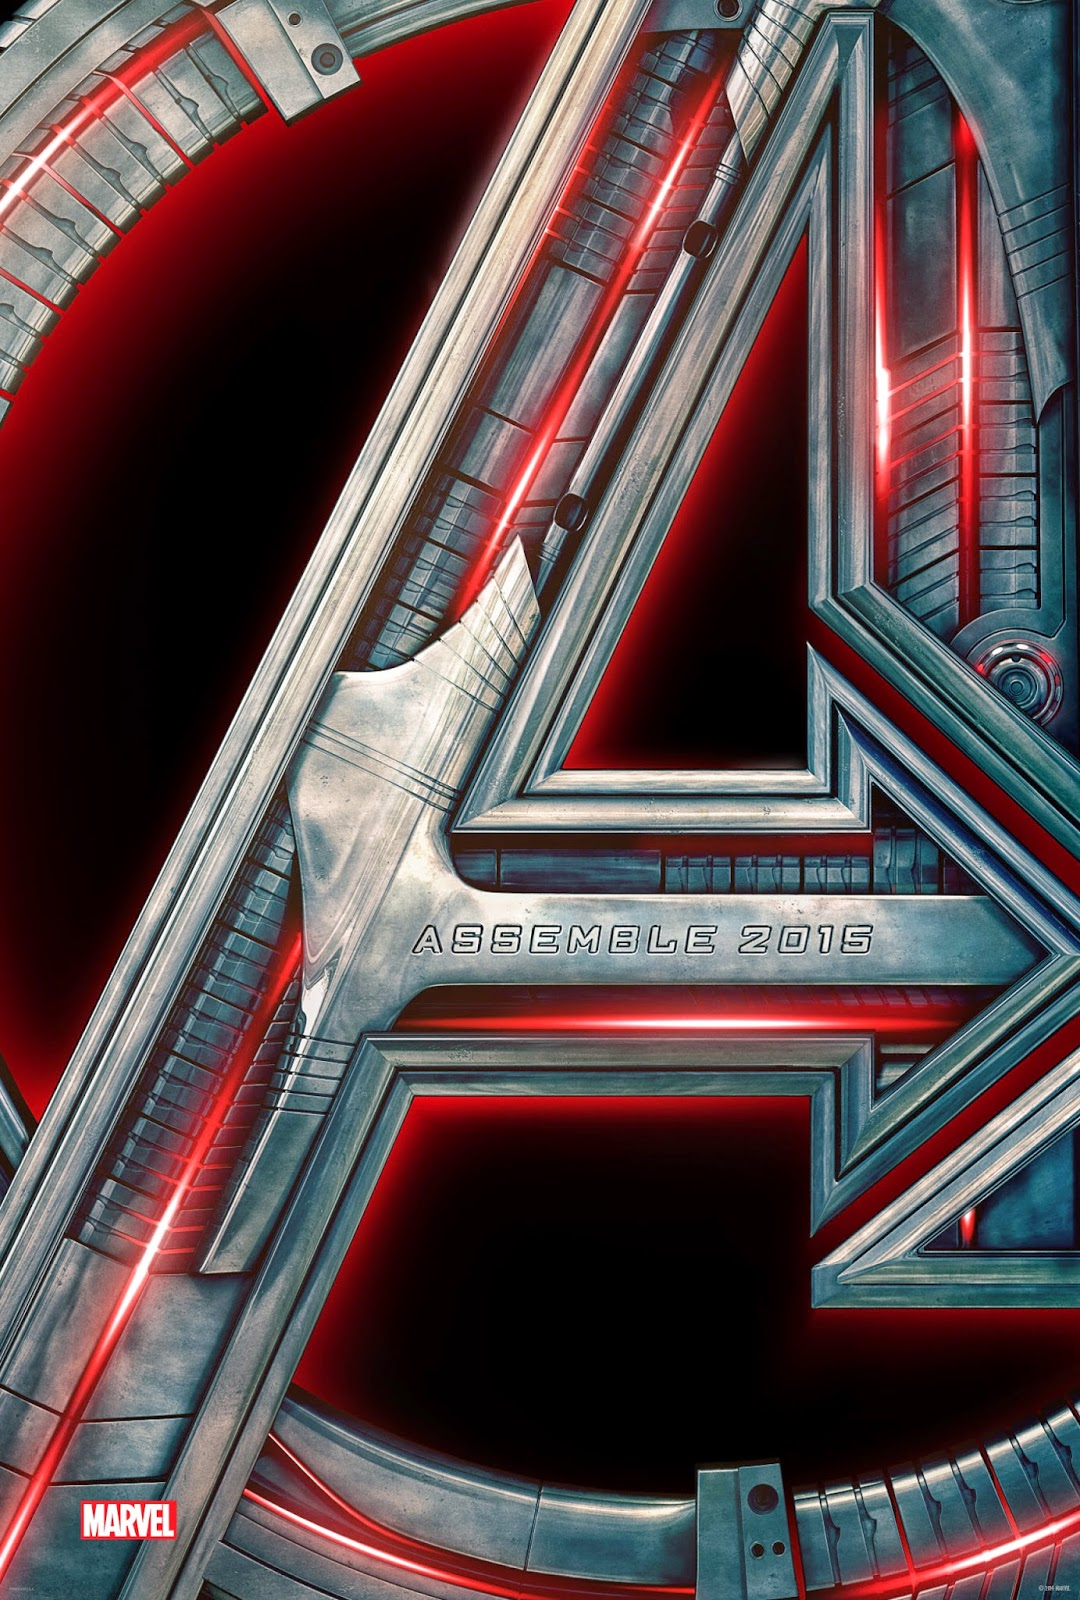 AVENGERS 2: AGE OF ULTRON, IL PRIMO TRAILER ITALIANO E' DISPONIBILE